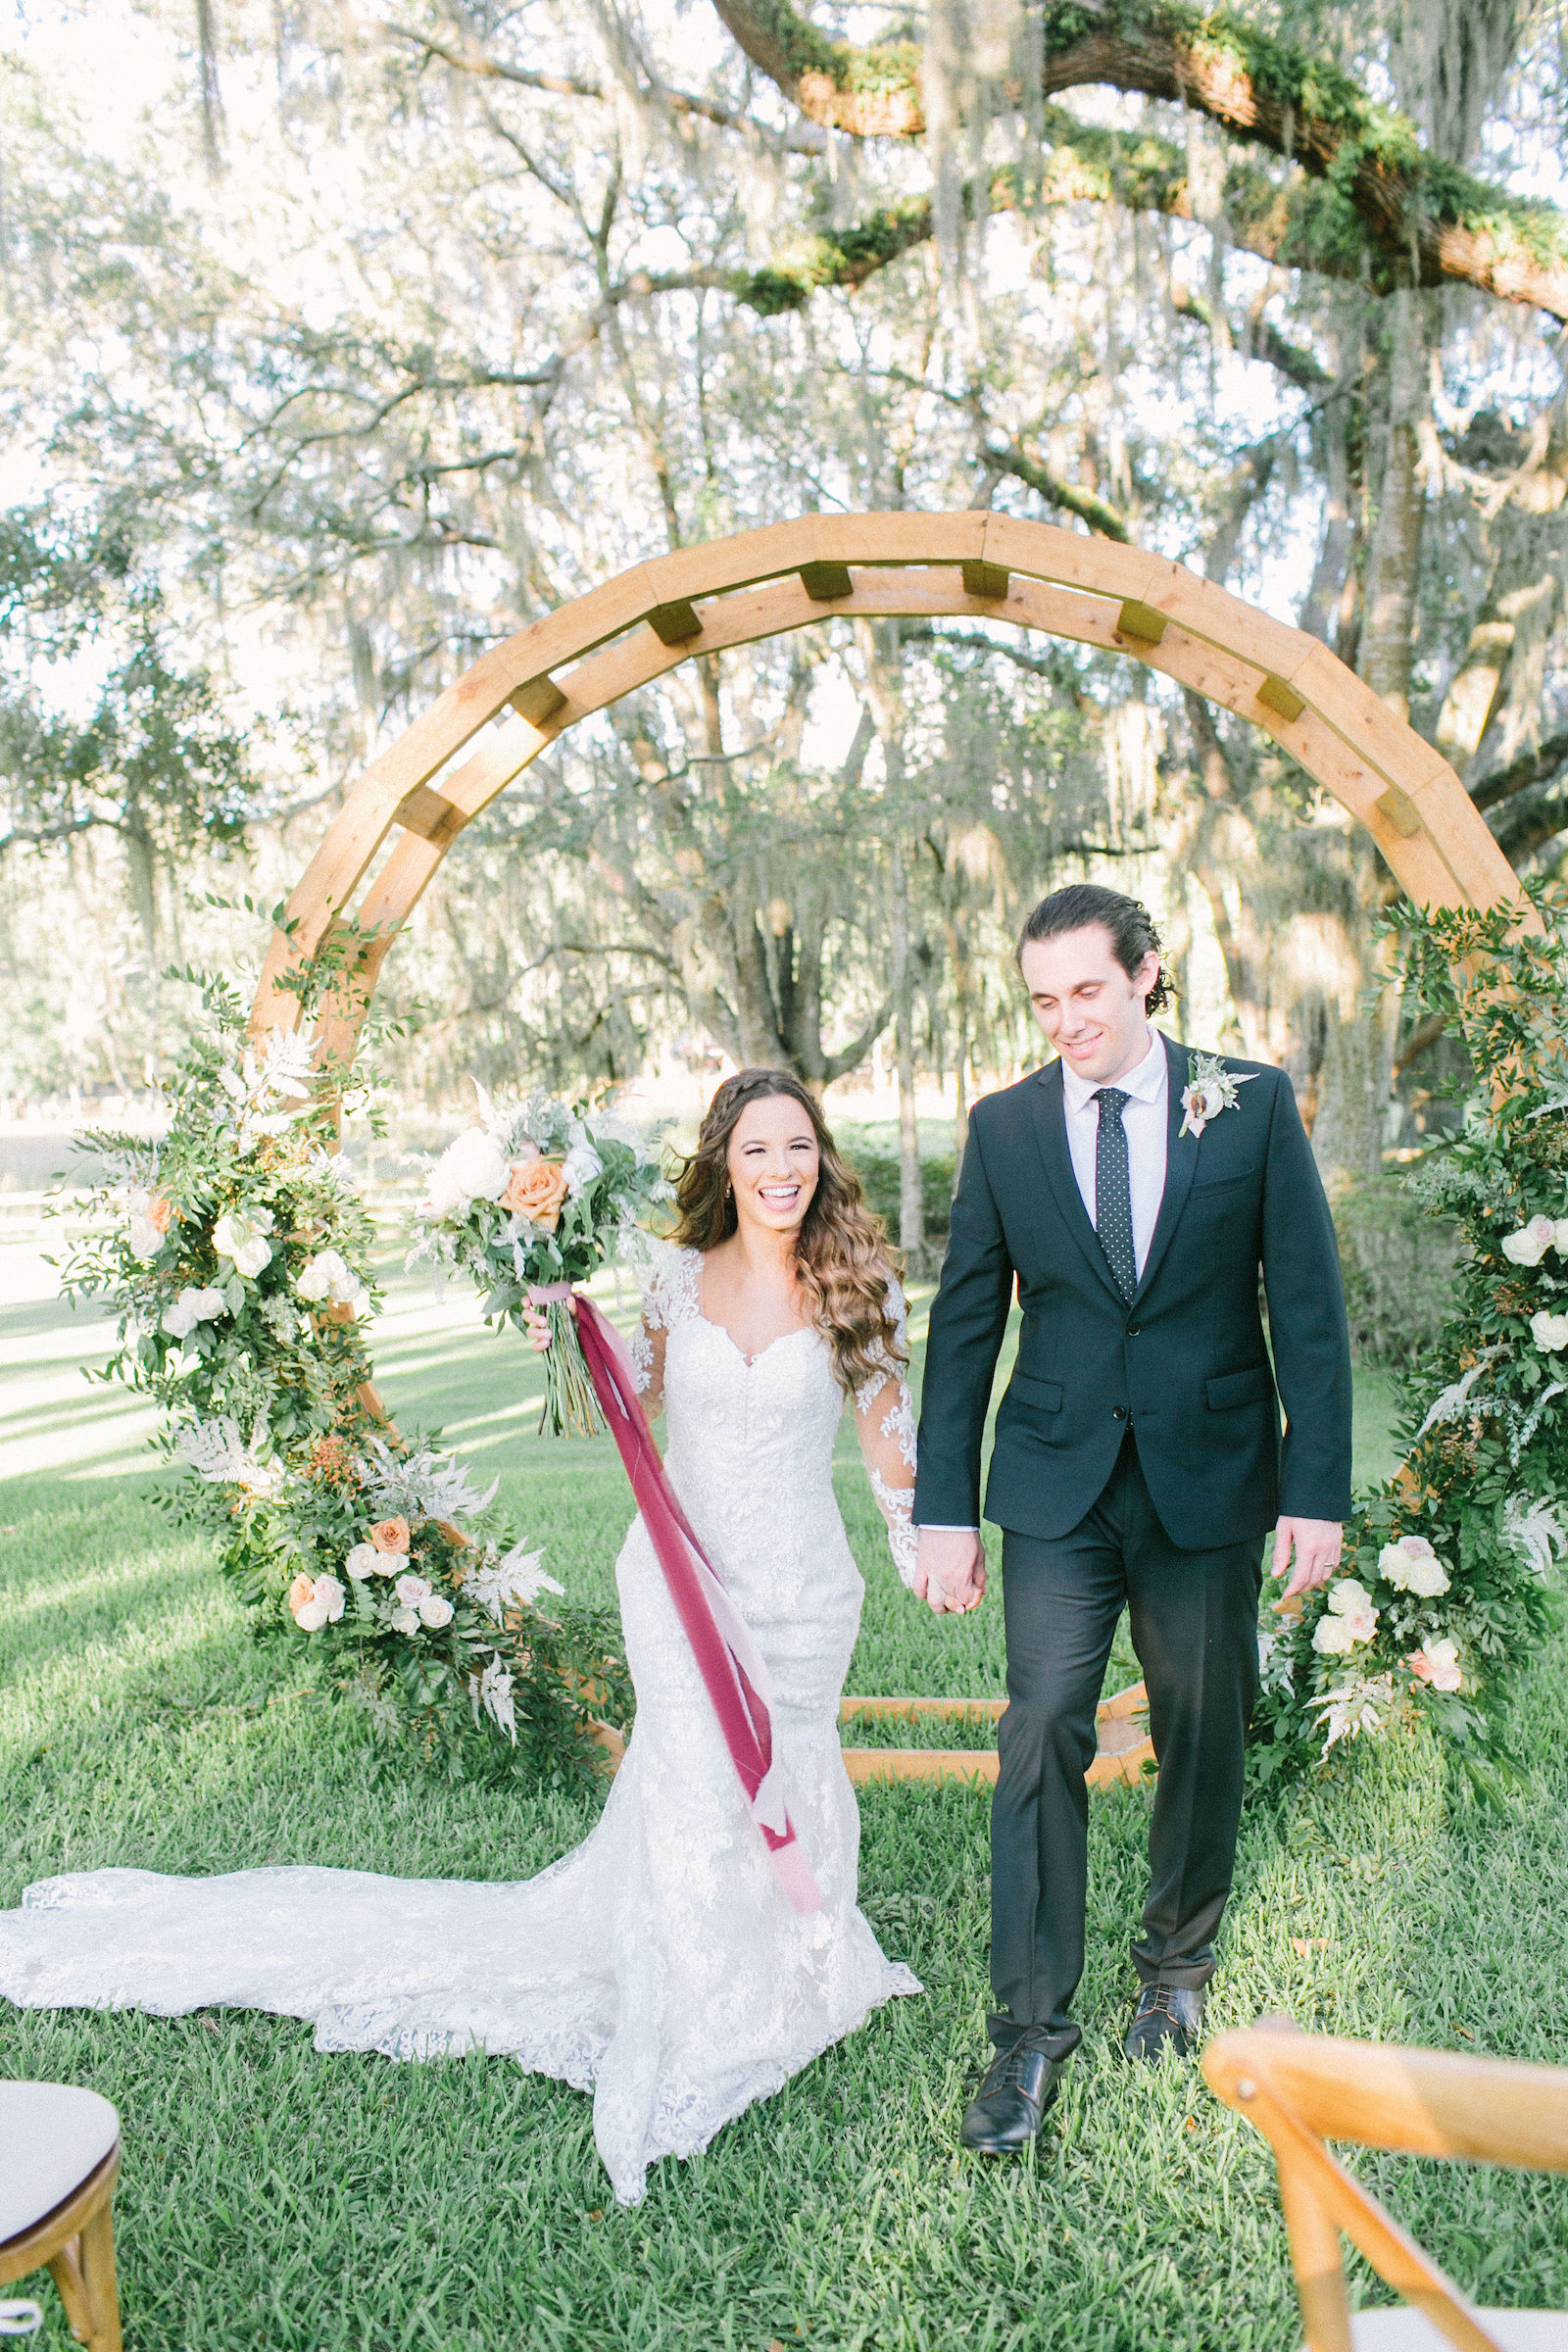 Outdoor Florida Bride and Groom Wedding Portrait | Groom Wearing Classic Black Suit Tux | Lace Mermaid Long Sleeve Low Back Illusion Lace Bridal Gown Wedding Dress | Ivory Champagne and Peach Natural Bouquet with Roses Astilbe and Greenery tied with Blush Pink and Mauve Ribbons | Round Wood Moon Arch Wedding Ceremony Backdrop with Natural Ivory and Peach Garland Floral Arrangements